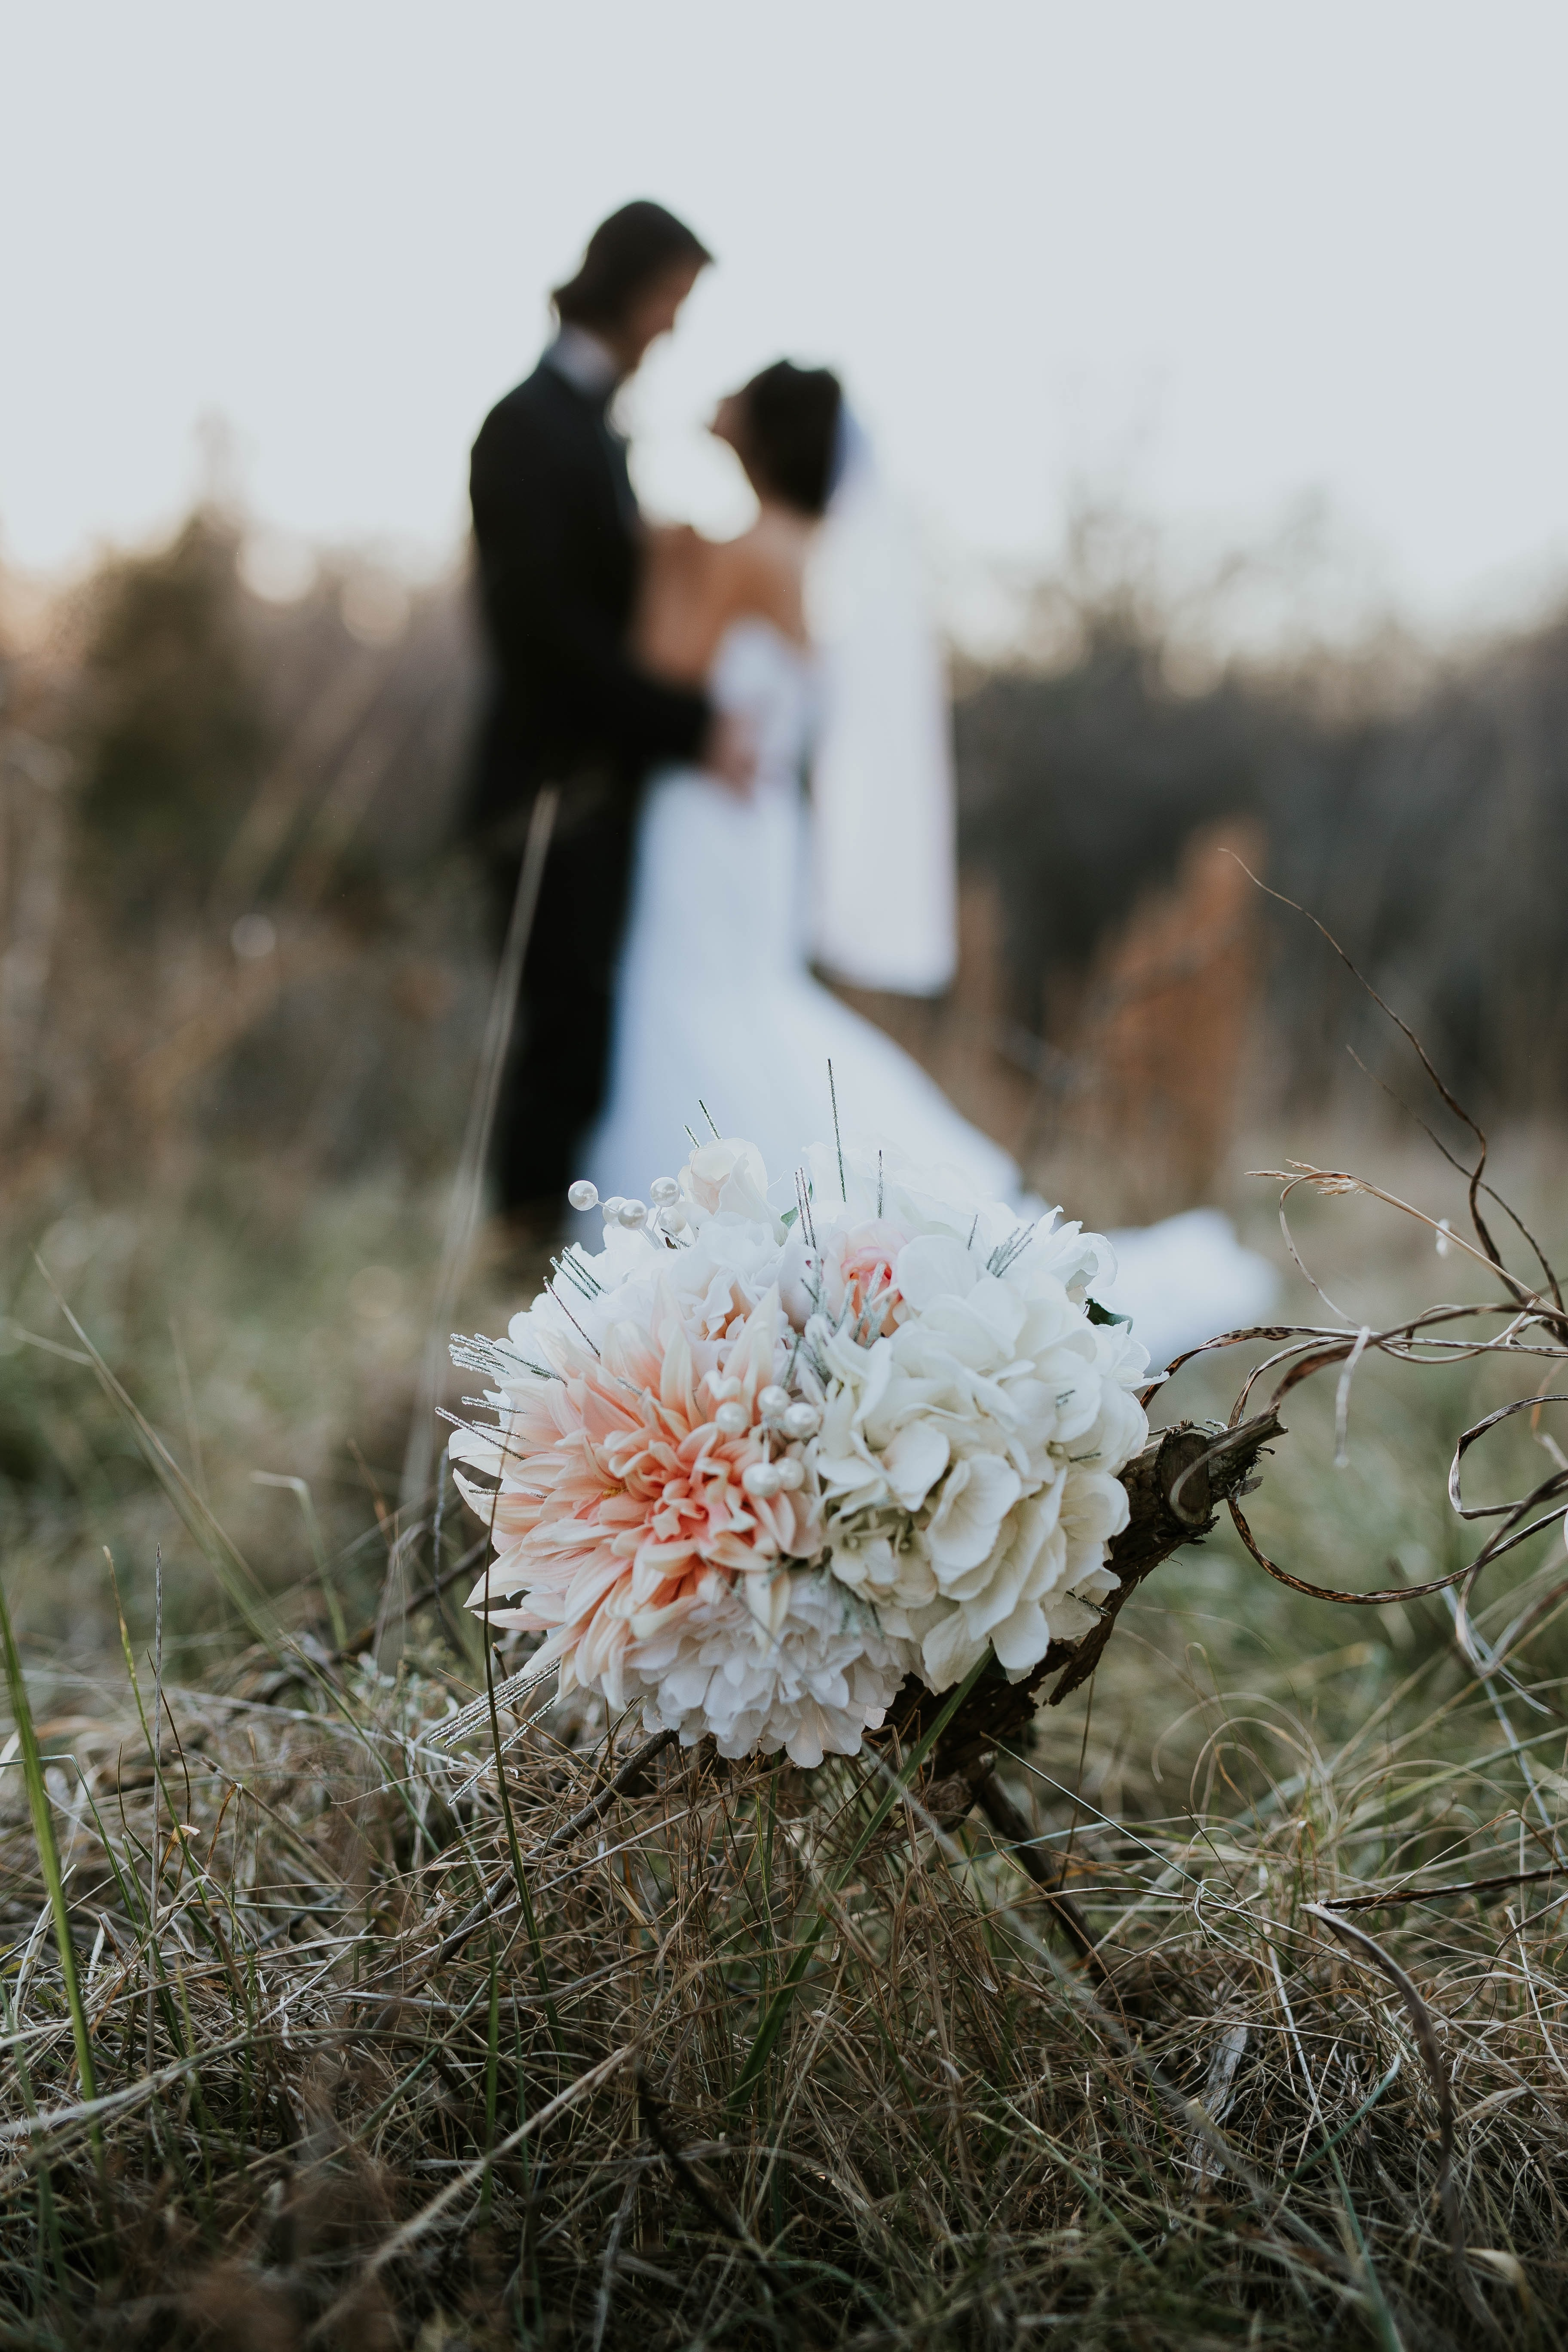 A bouquet sits in tall grass while a married couple embraces in the fuzzy background